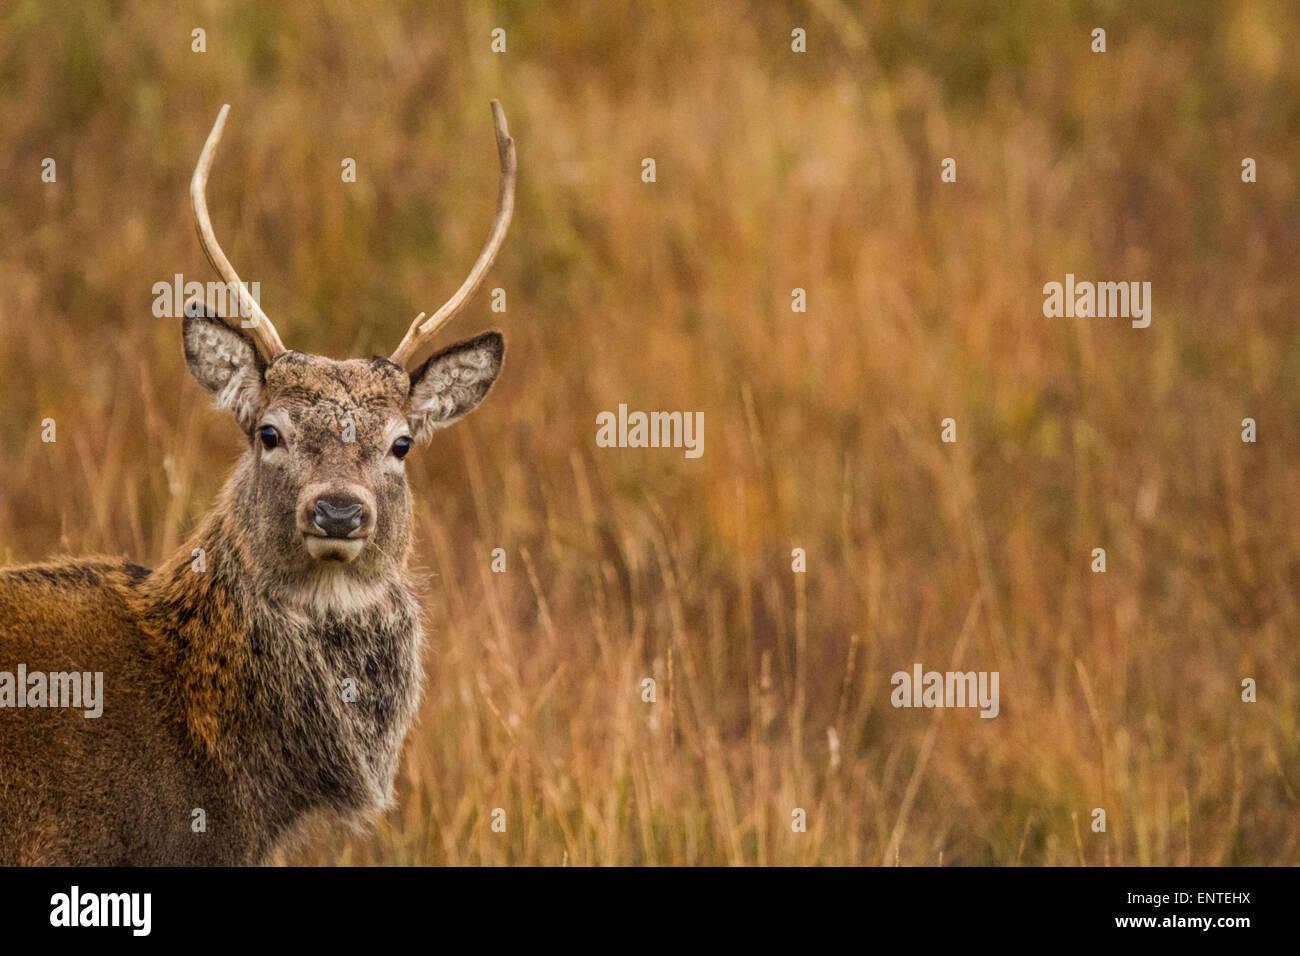 Red Deer stag (Cervus elaphus) in the Scottish Highlands, Inverness-shire, Scotland, UK looking at camera, close - Stock Image